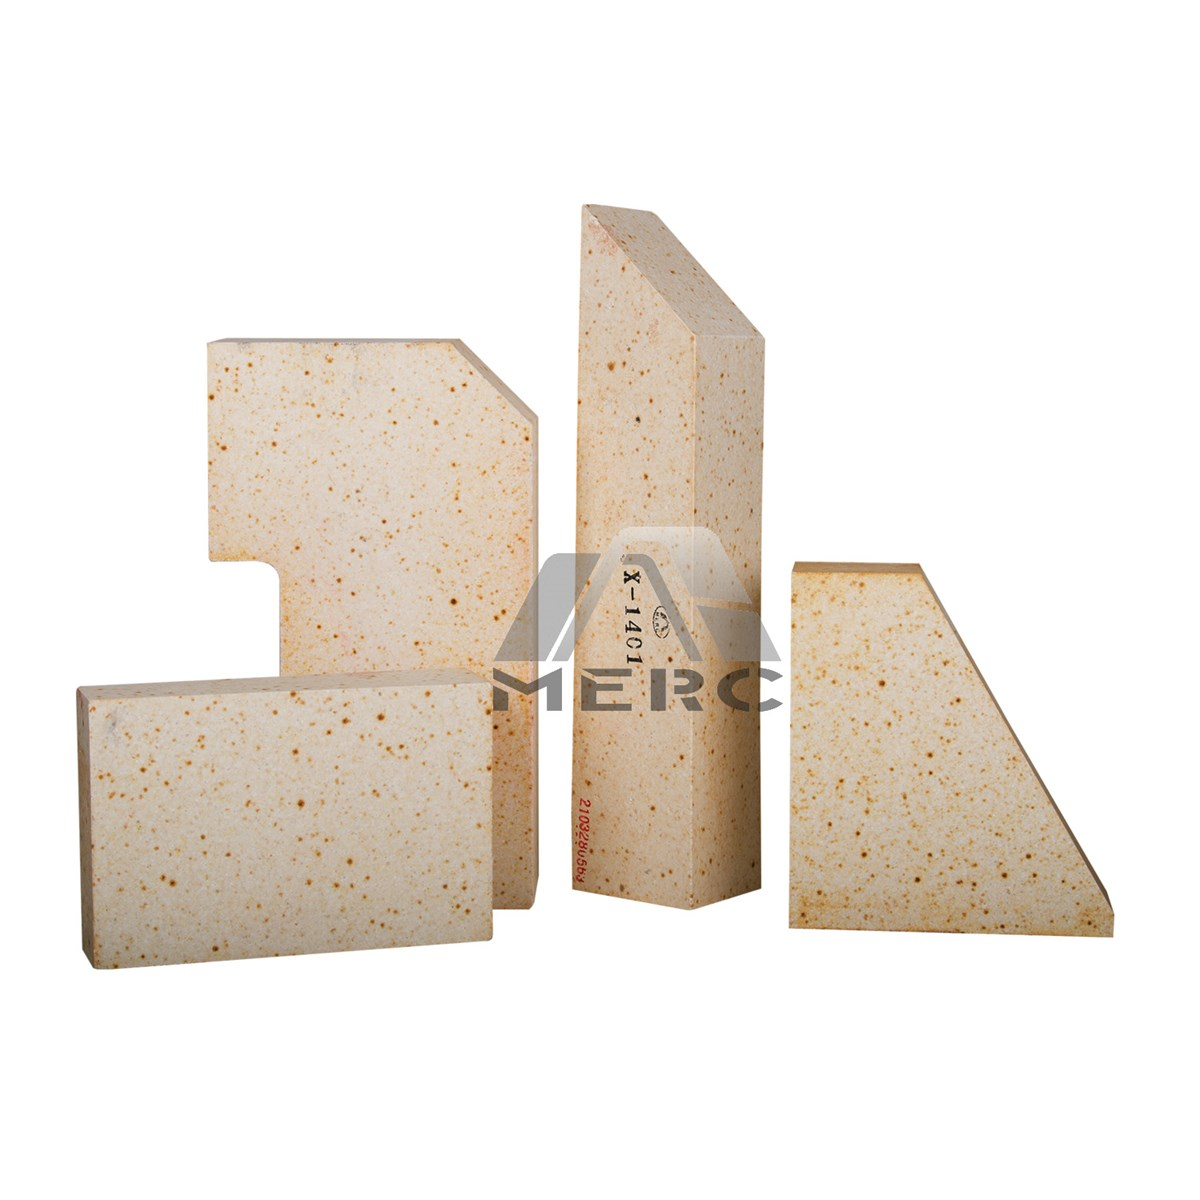 Super Duty Silica Brick for Crown and Superstructure of Glass Melting Furnace